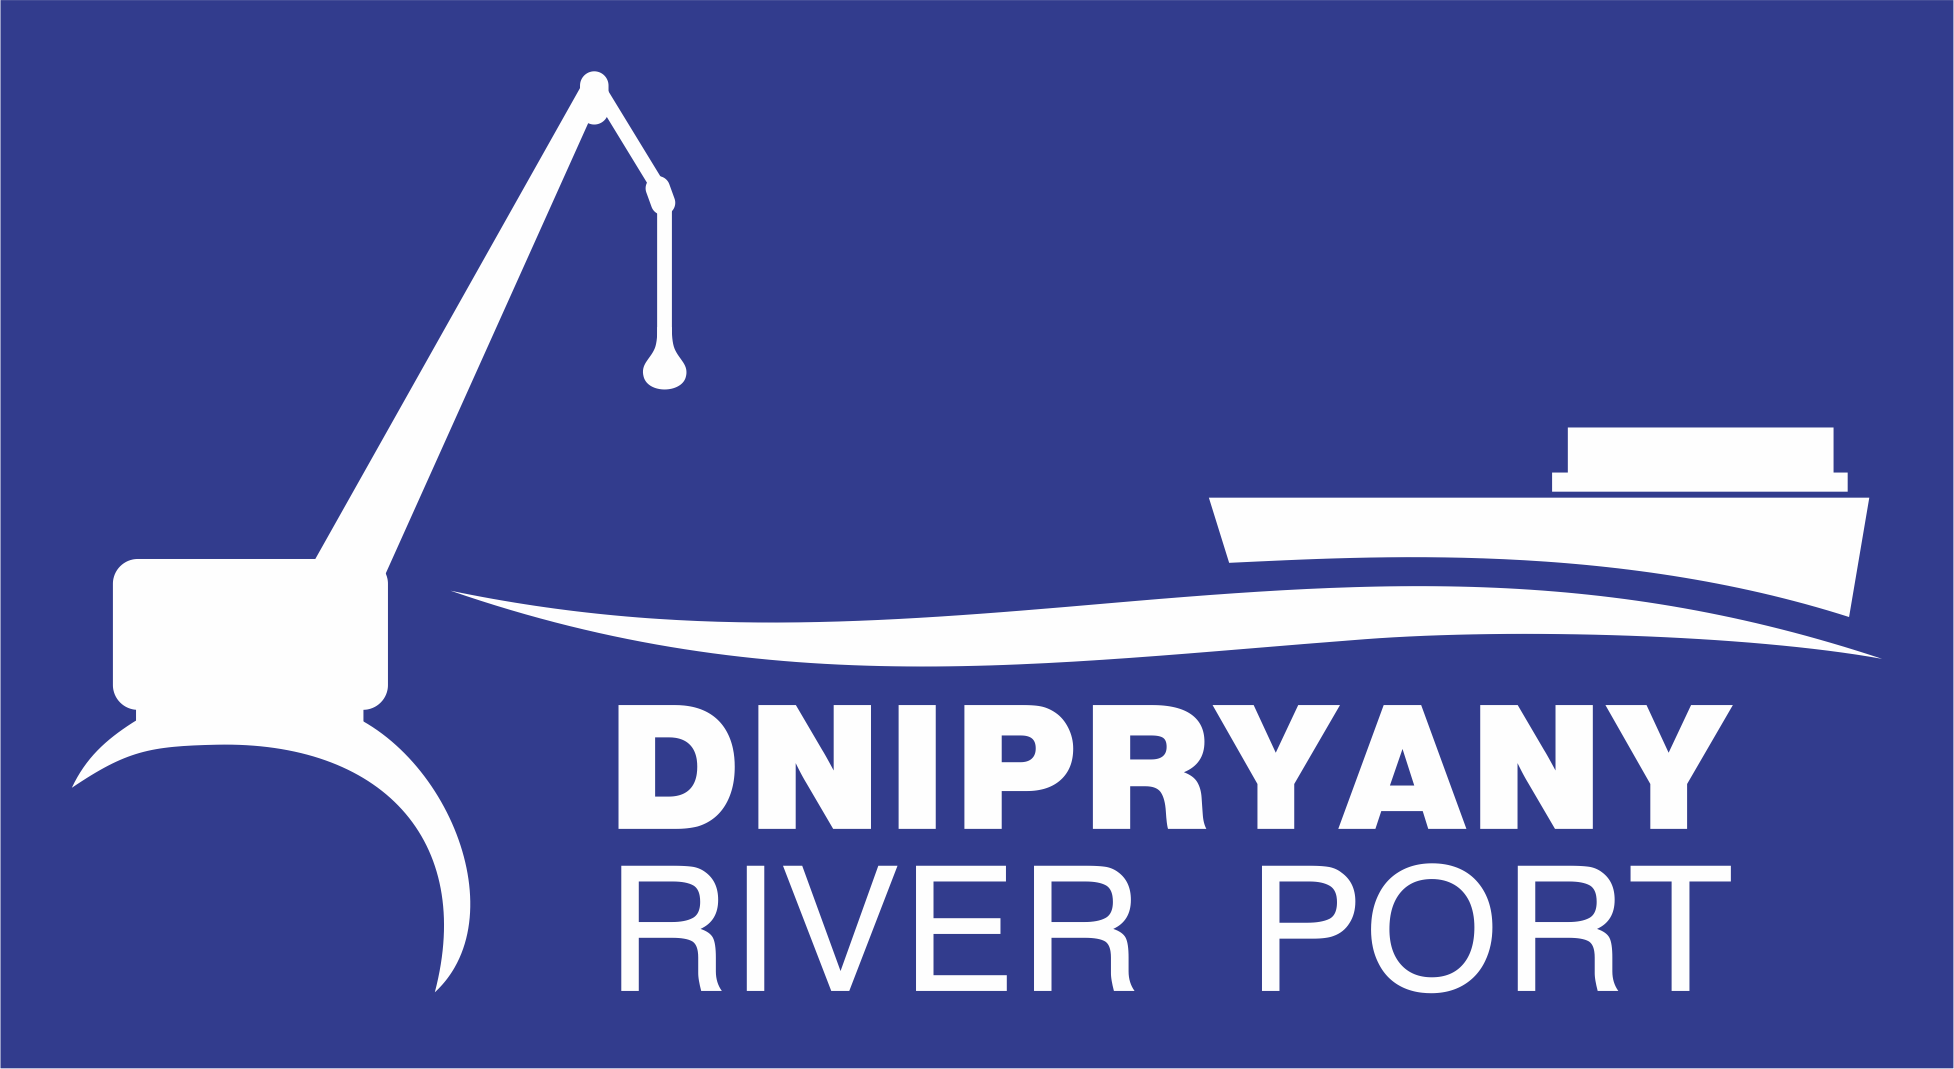 Dnipryany river port